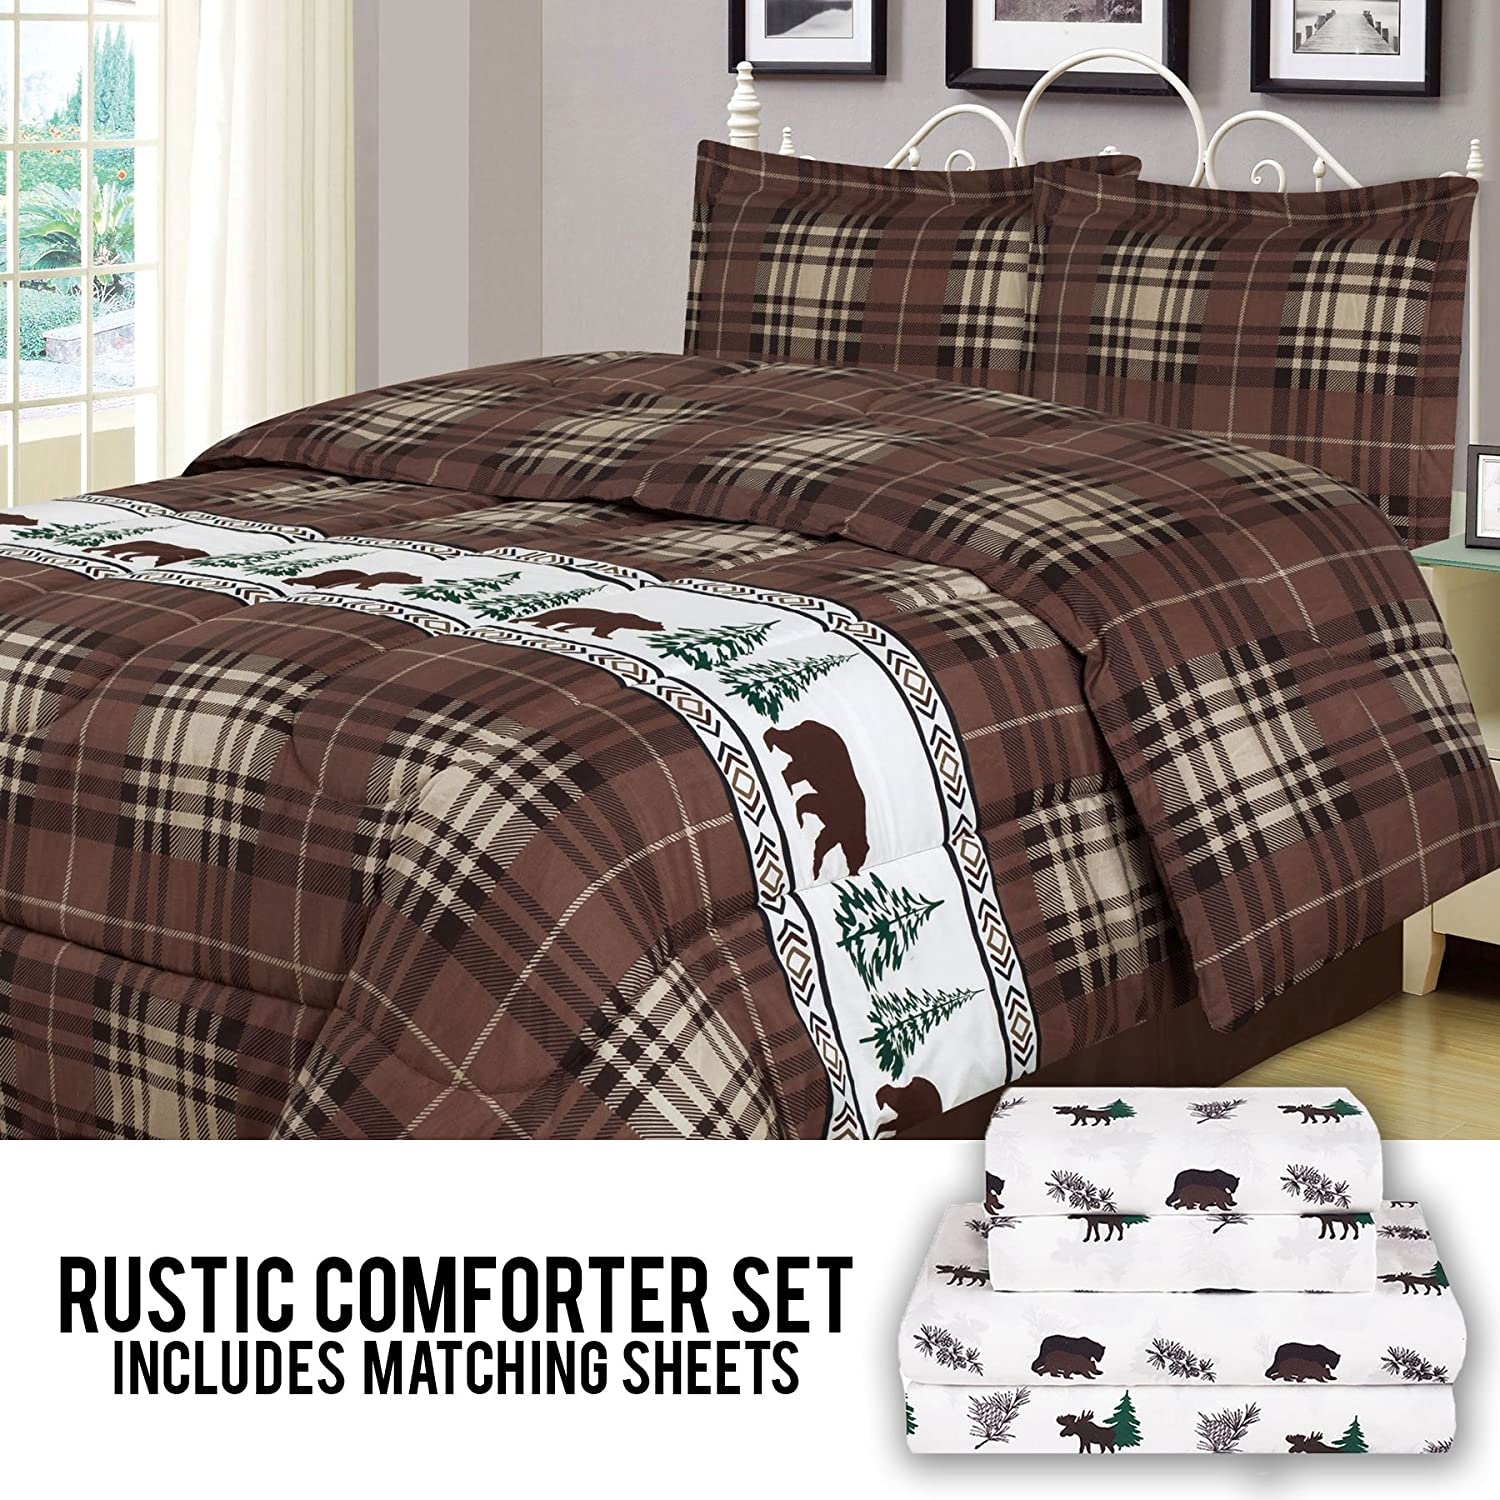 wildlife sheets fabulous in sets collections sale cabin full a bedroom log comforter comforters size blankets rustic bed of queen duvet bag bedding